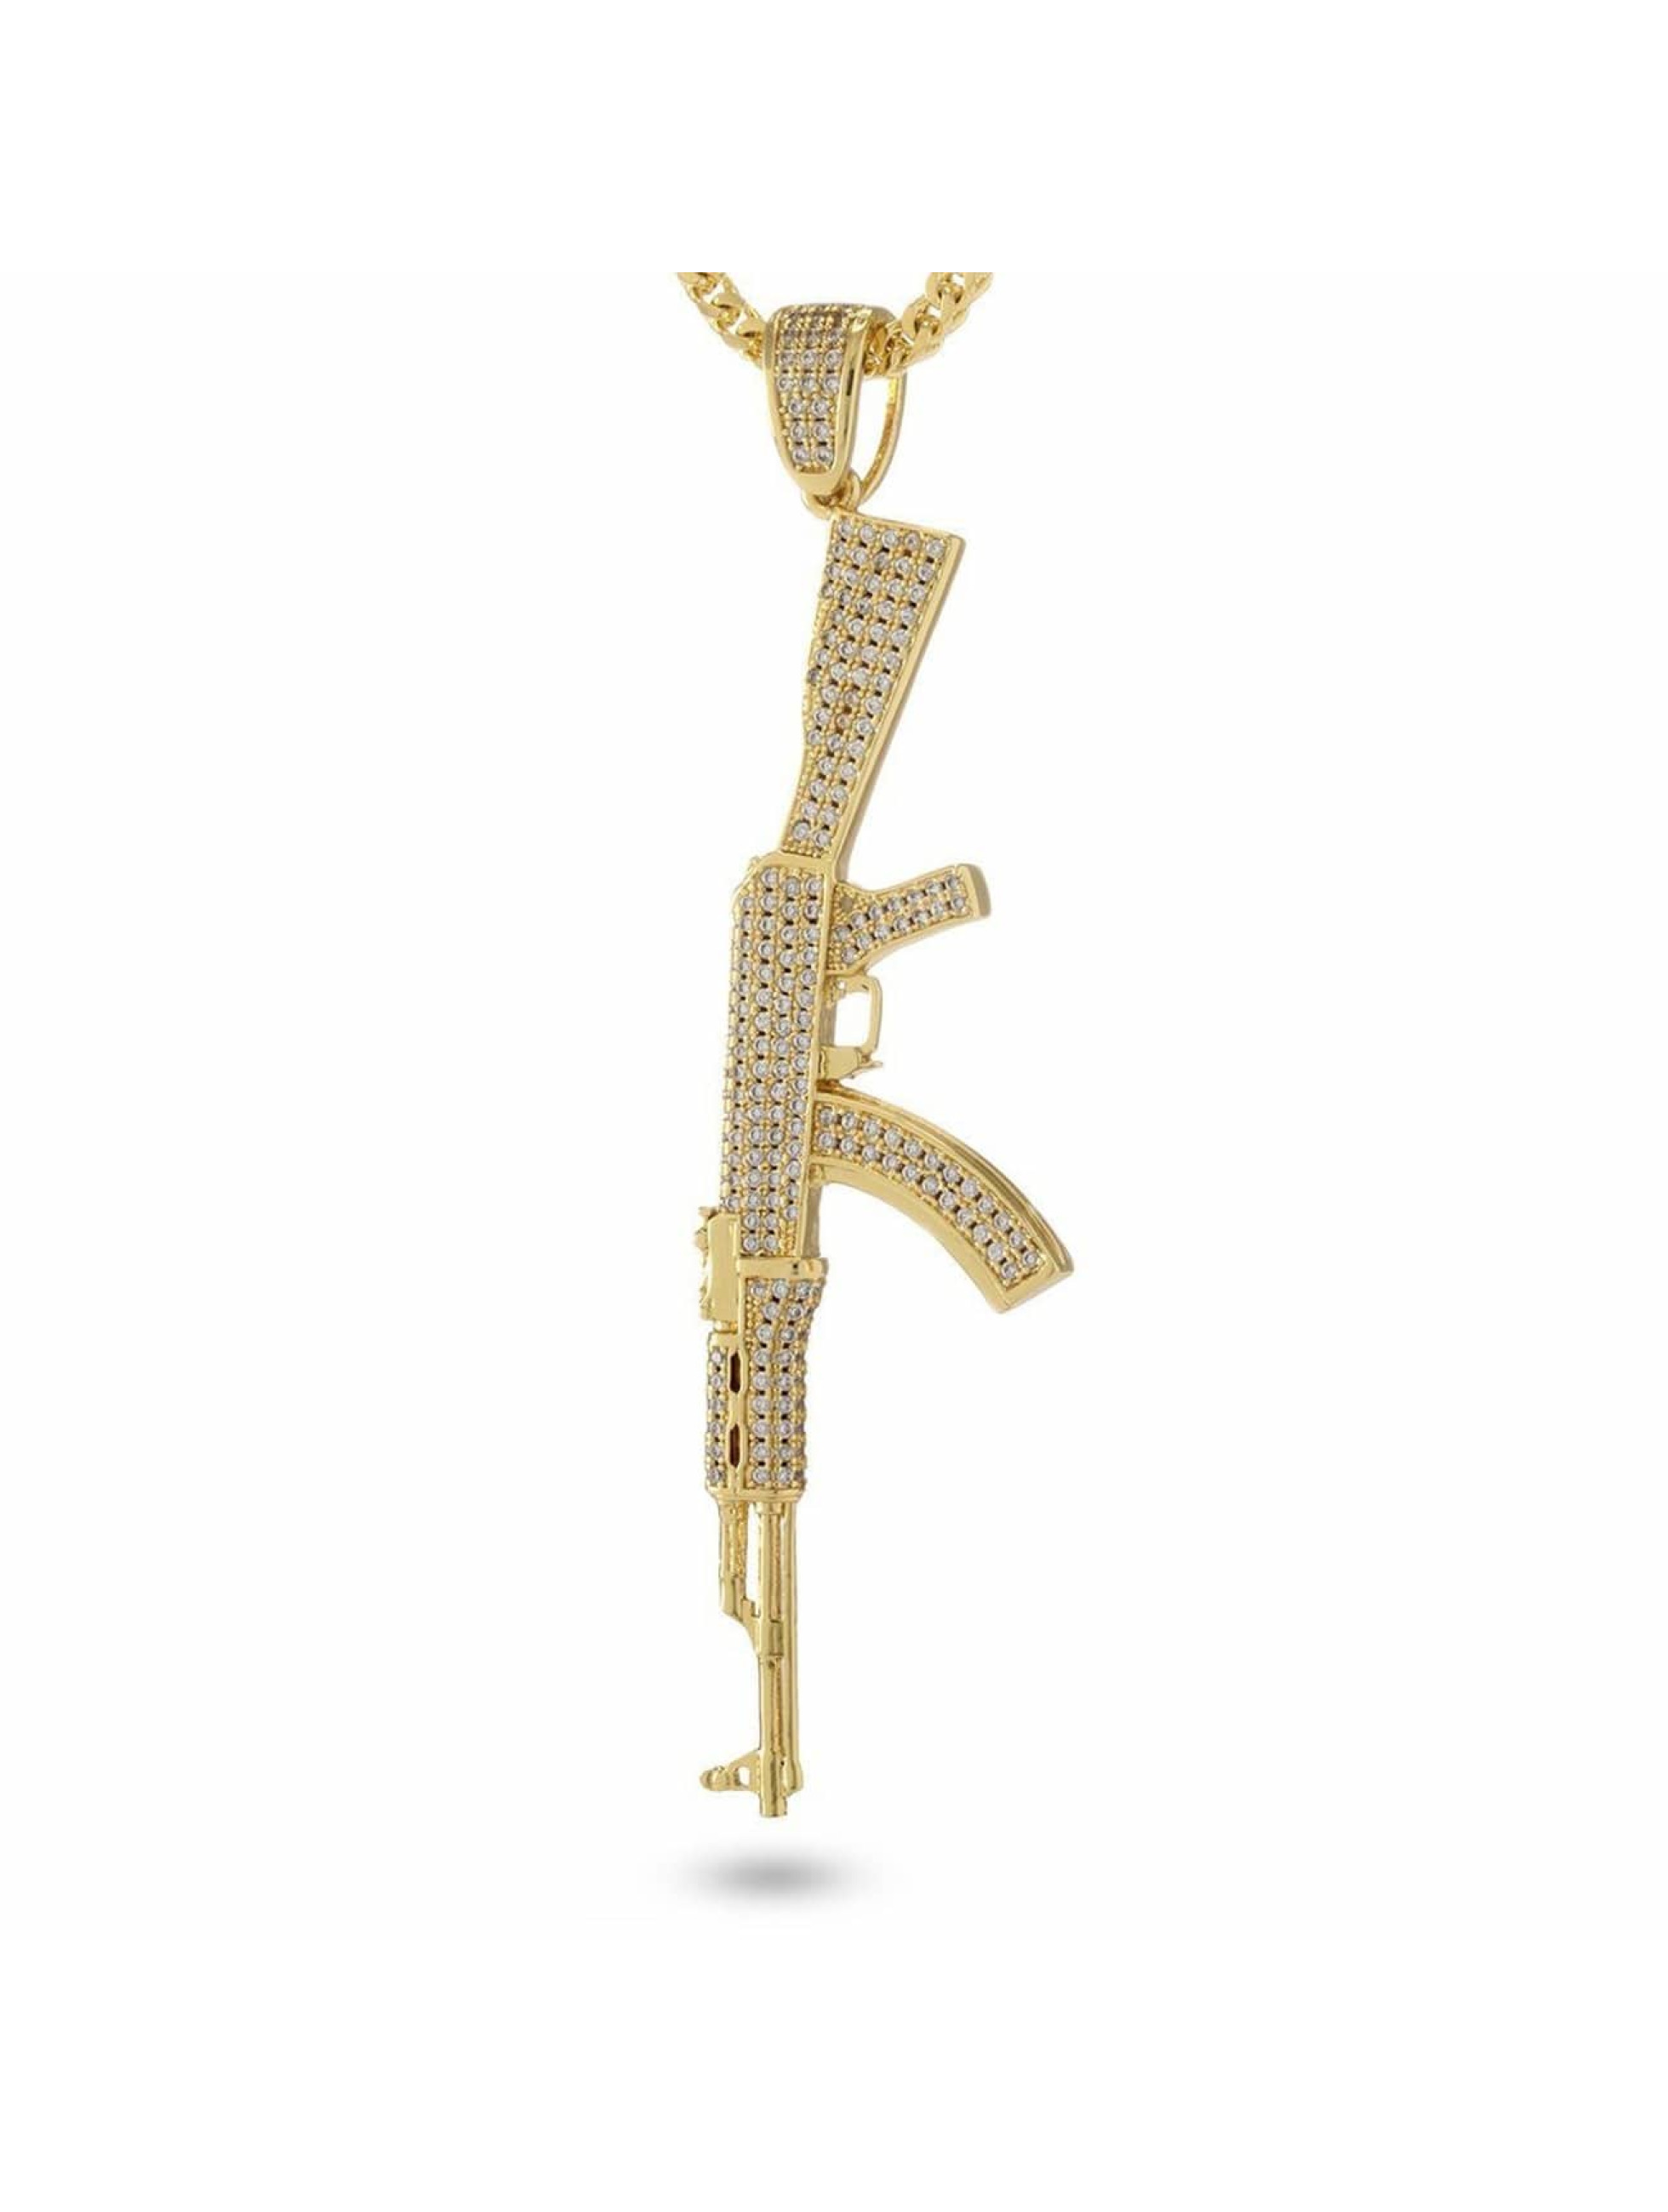 KING ICE Necklace Studded AK-47 gold